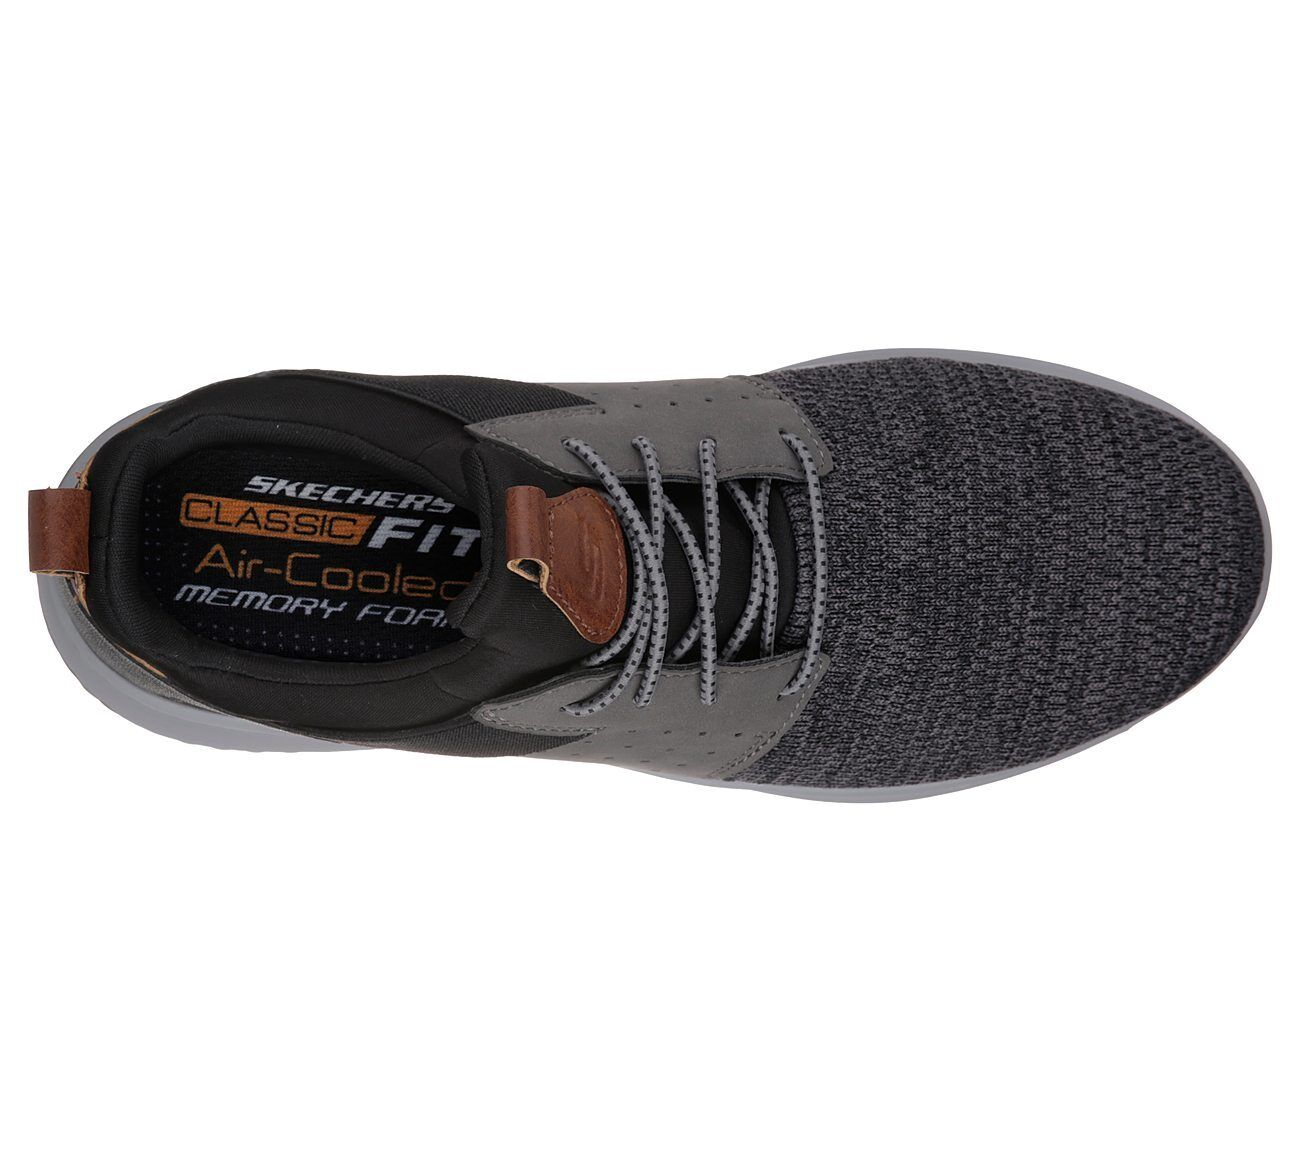 8d4d41b6da06b Skechers Delson - Camben Trainers Mens Sports Lightweight Knit Mesh Shoes  65474